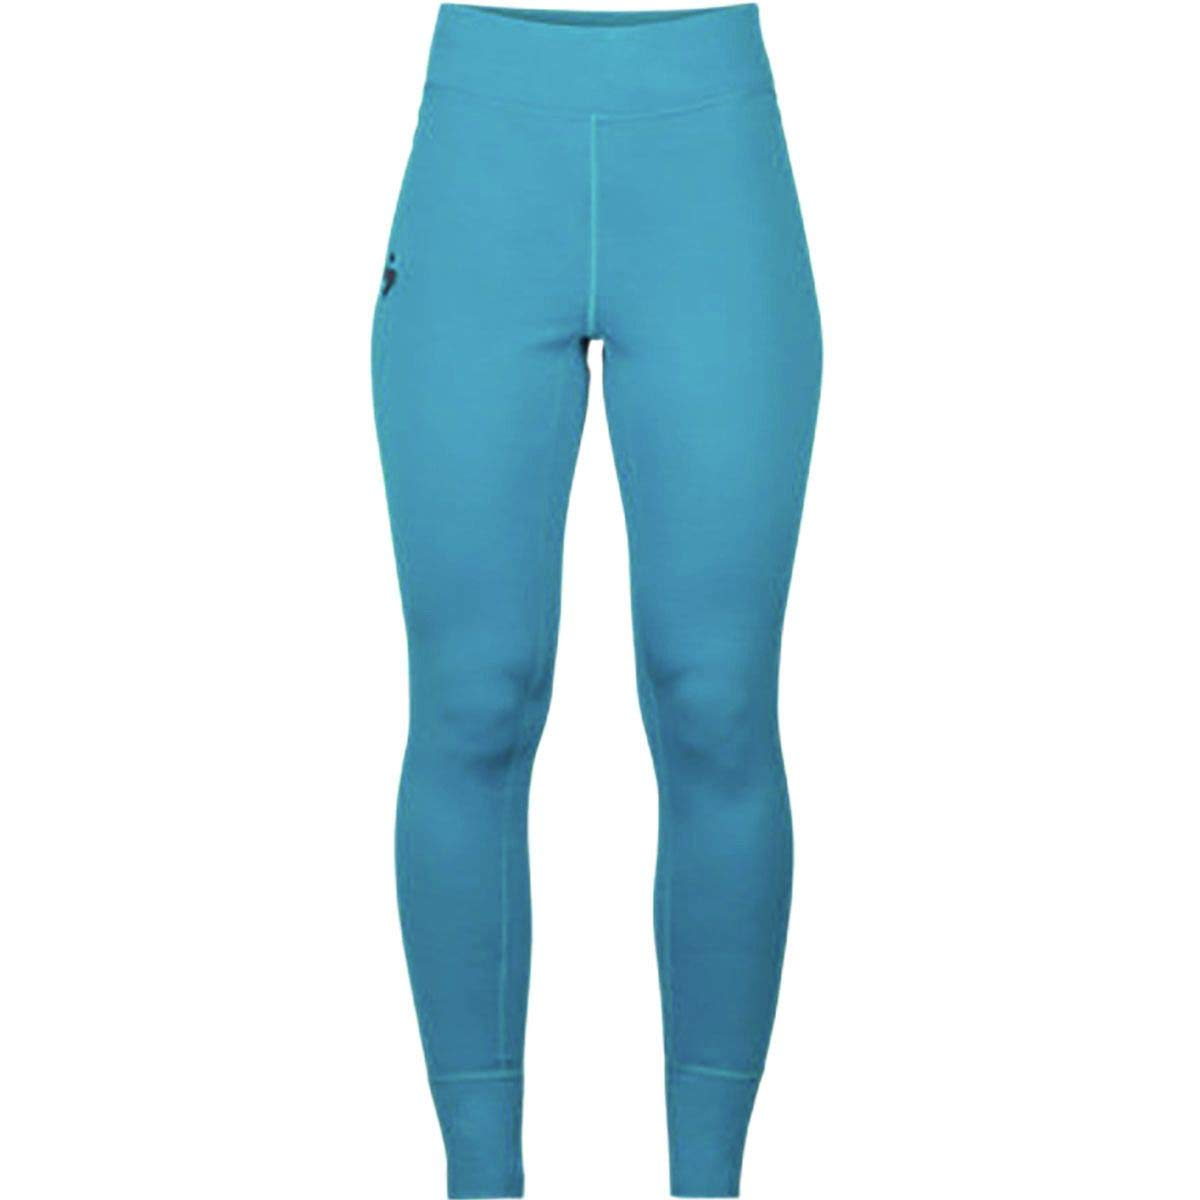 Sweet Protection Alpine 17.5/200 Pant - Women's Panama Blue, L by Sweet Protection